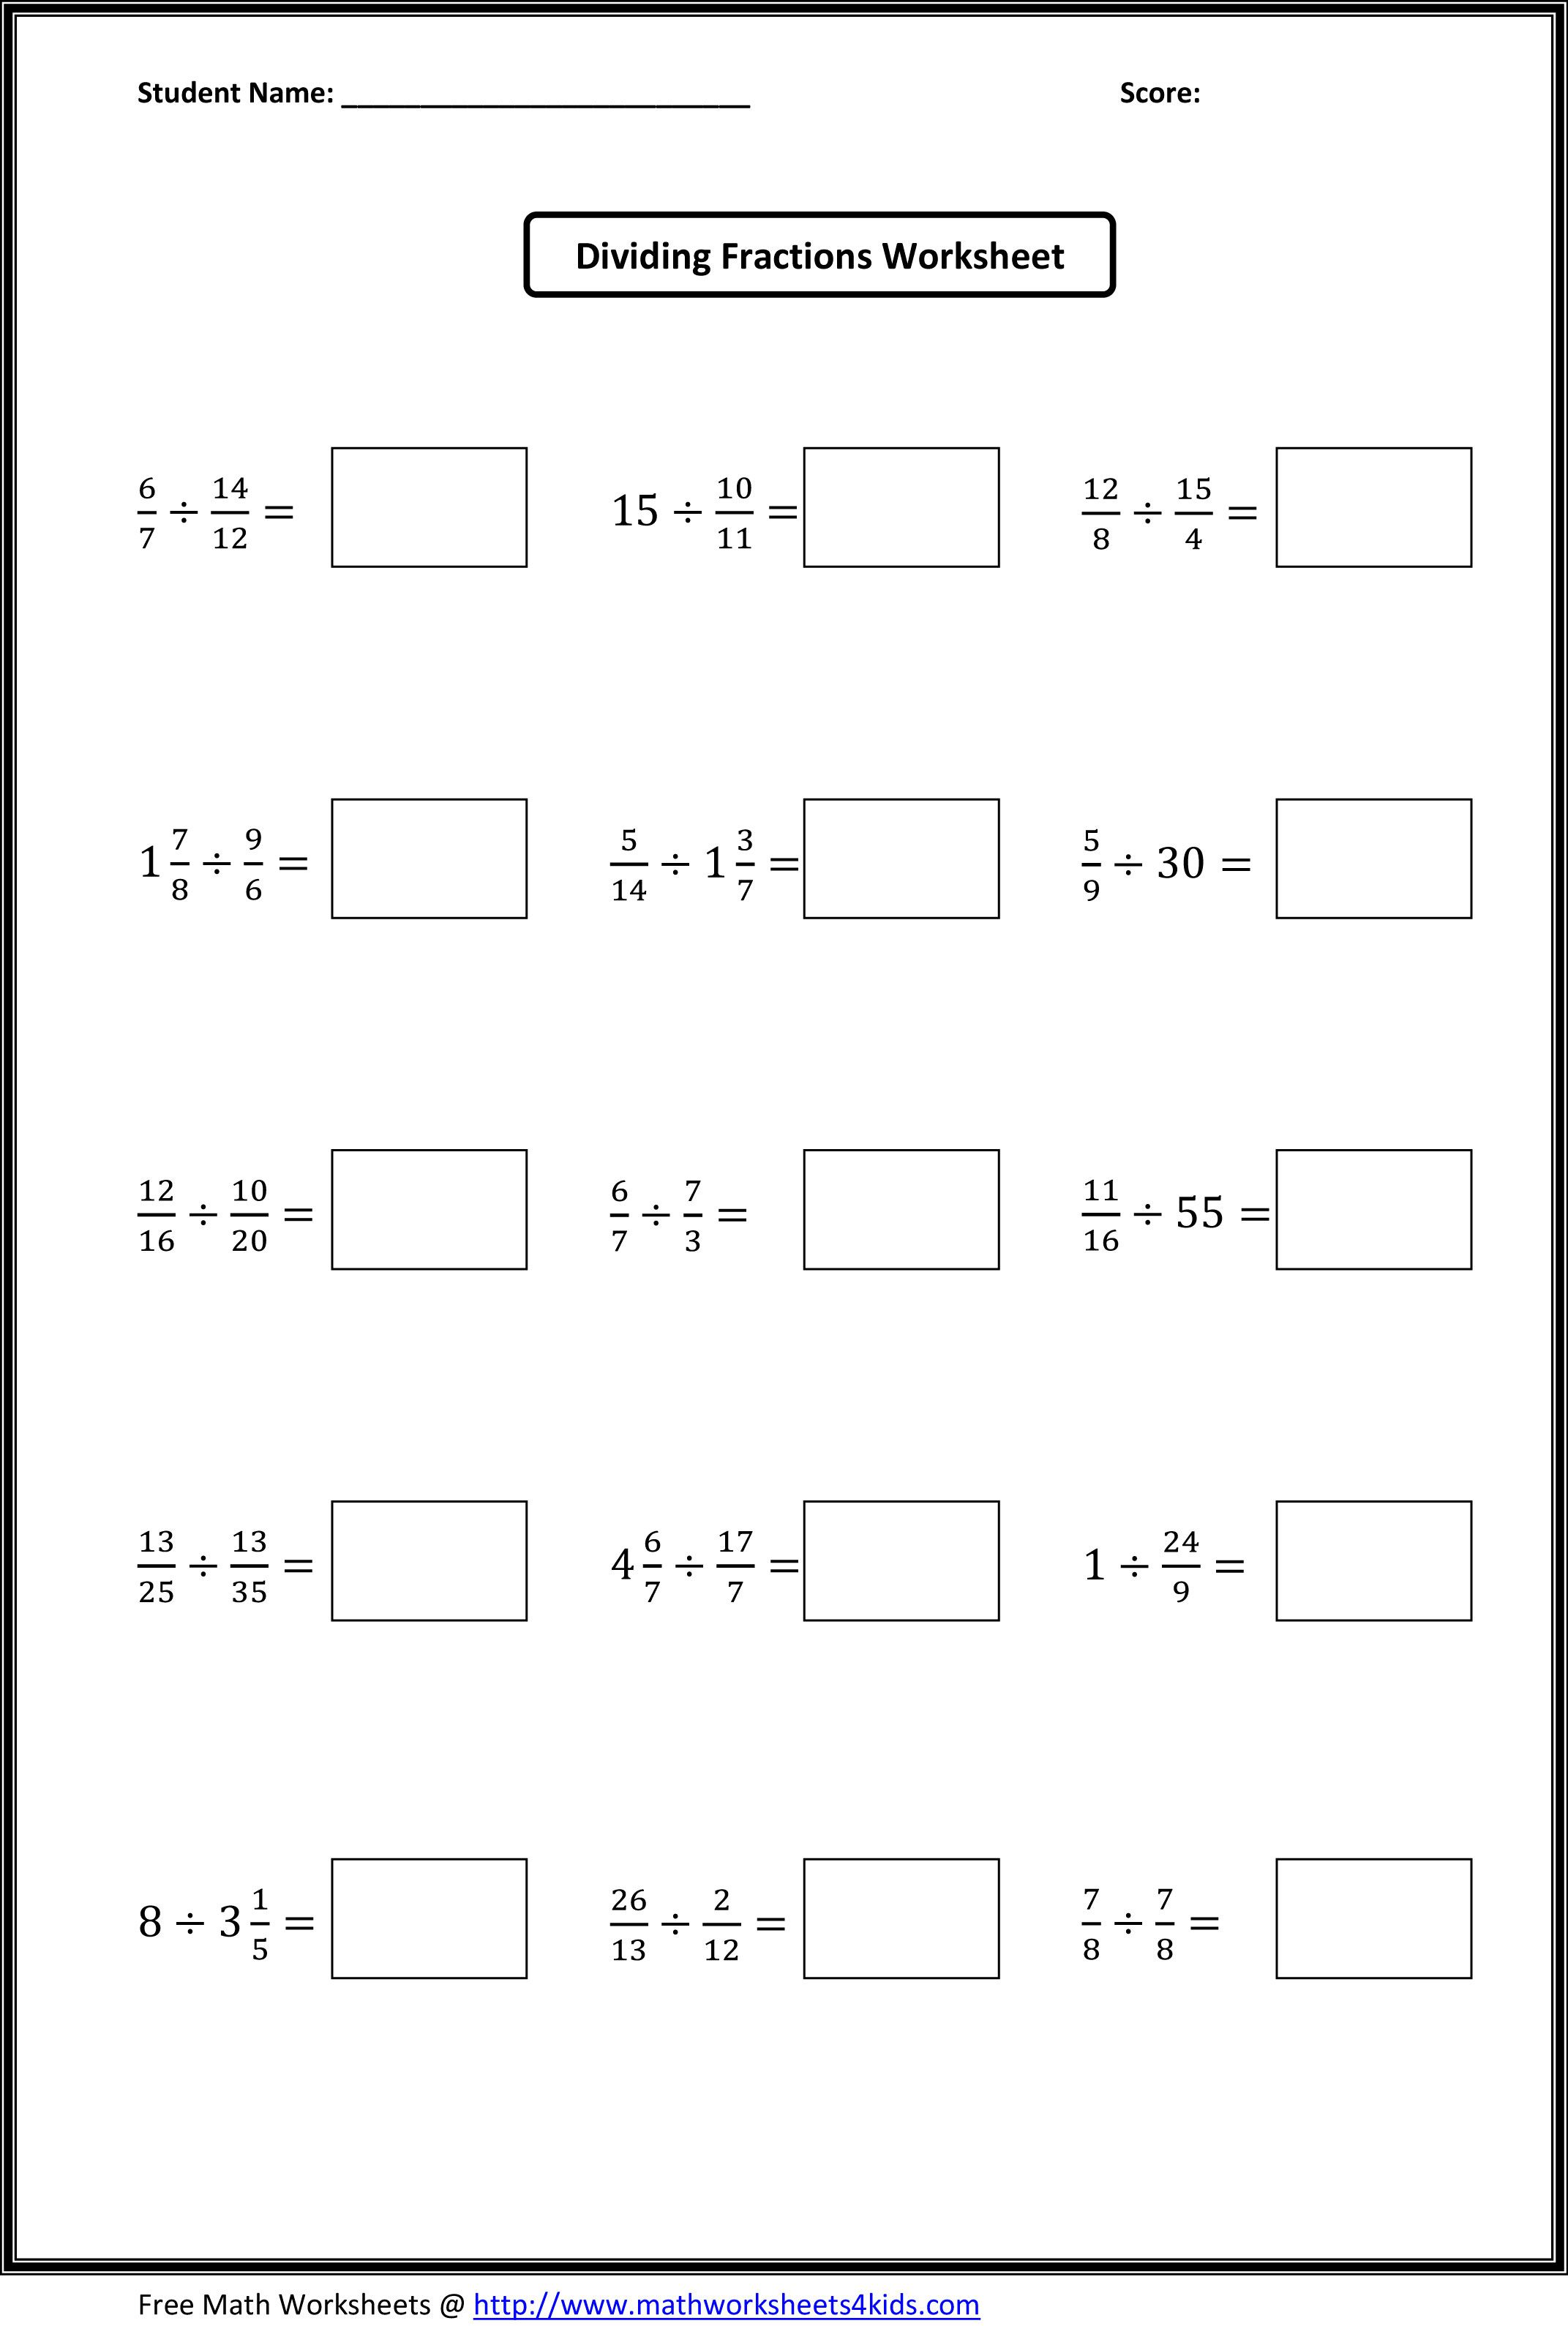 Dividing Fractions Worksheets What's New Pinterest